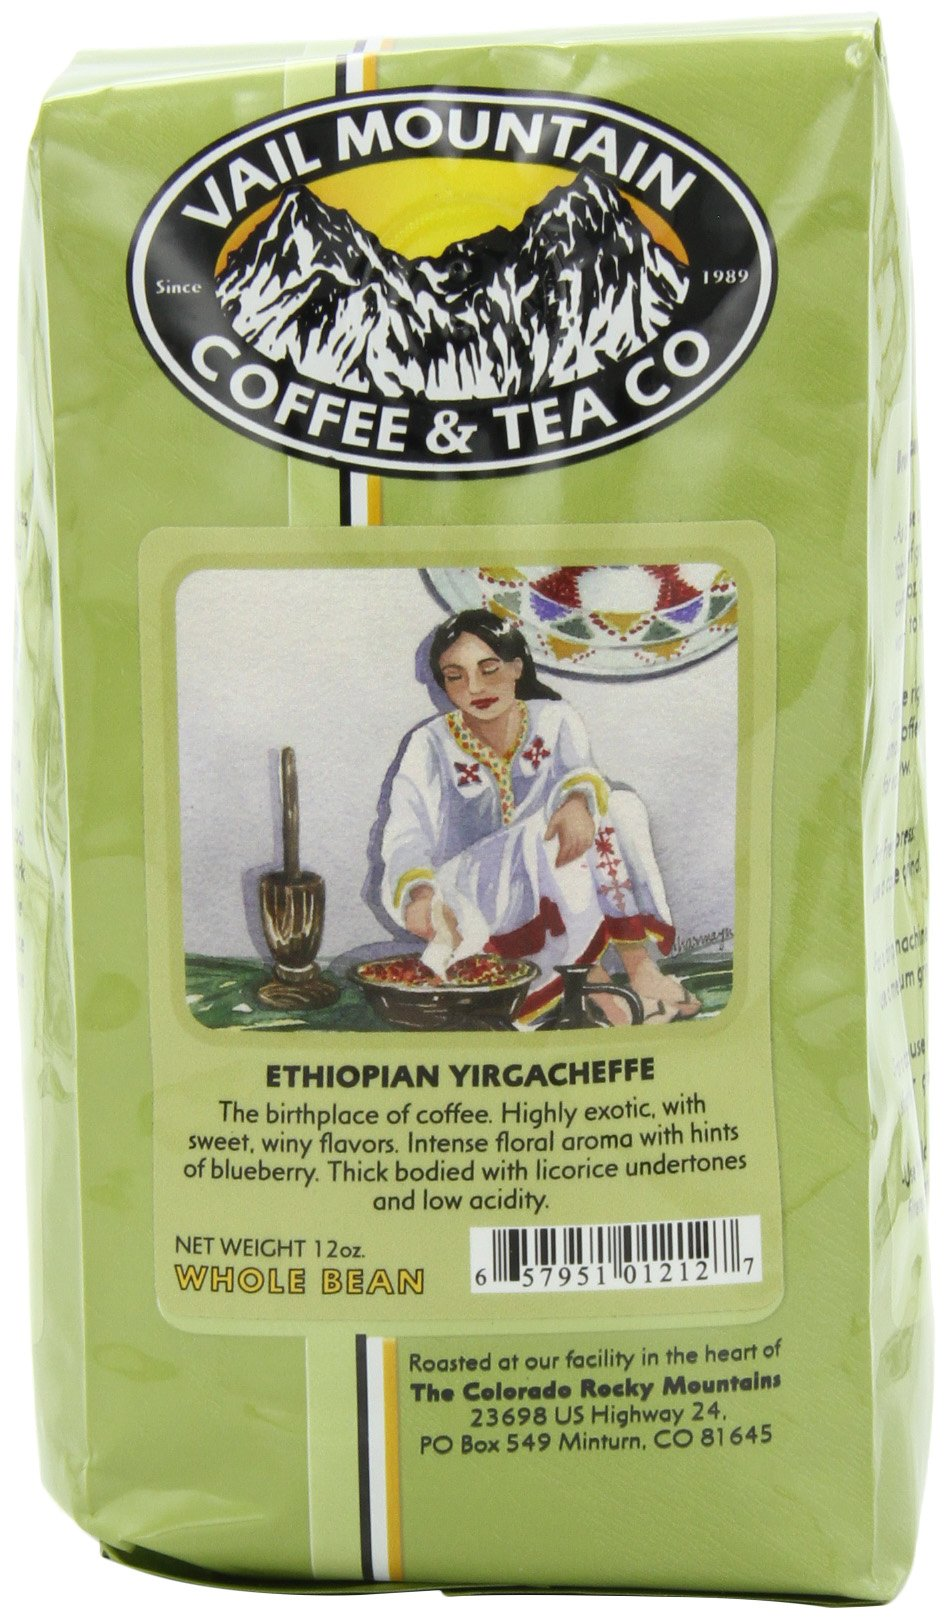 Vail Mountain Coffee & Tea Ethiopian Yirgacheffe Whole Bean Coffee, 12-Ounce Bags (Pack of 3) by Vail Mountain Coffee & Tea